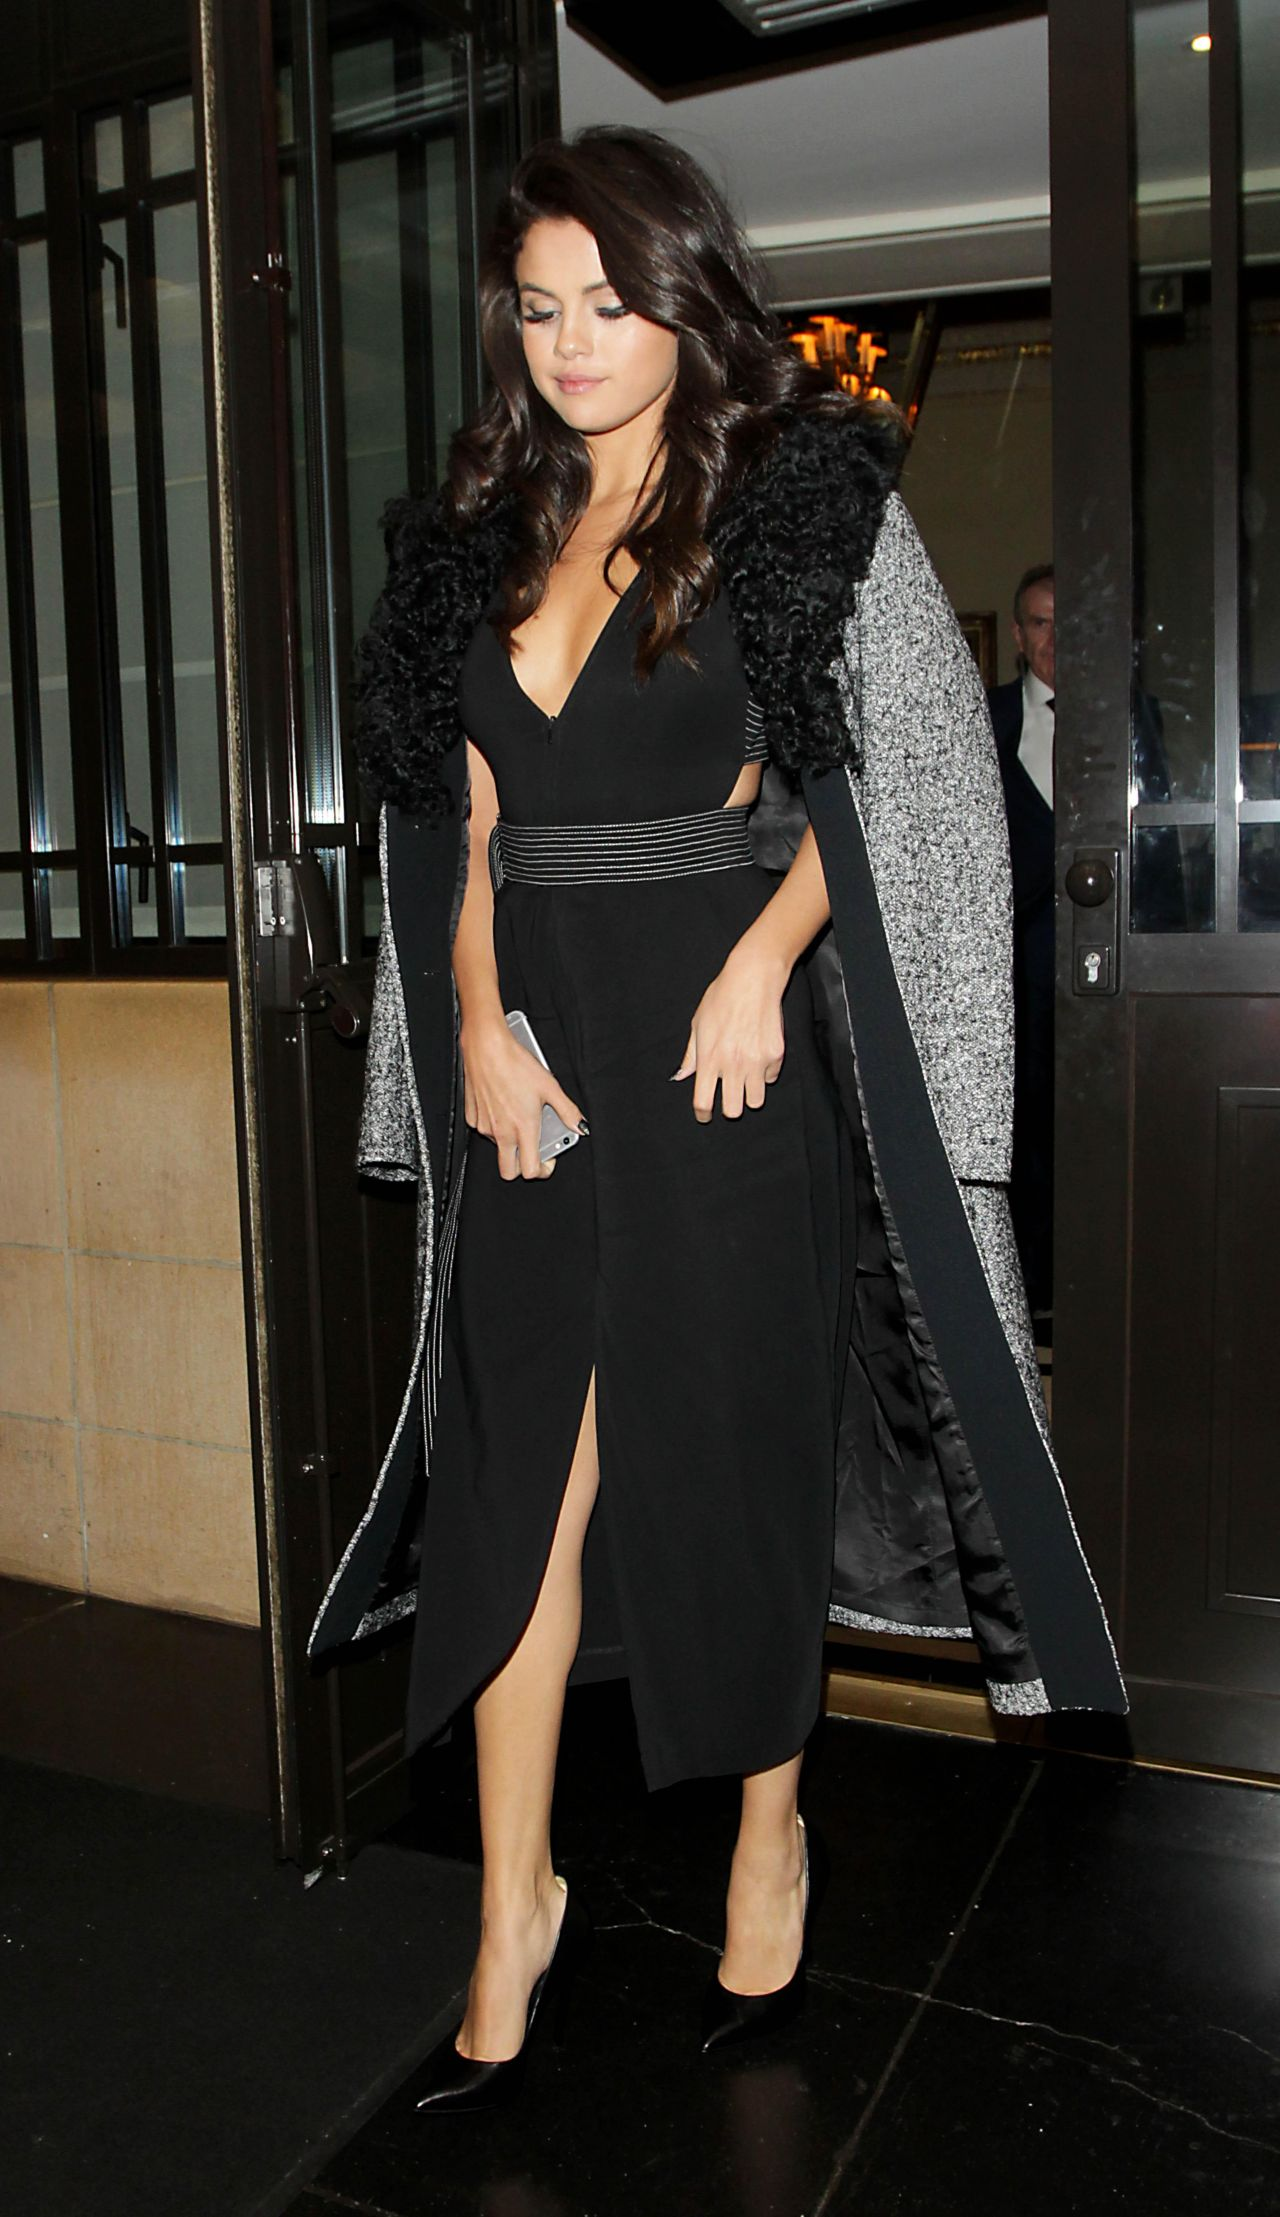 selena-gomez-leaving-the-dorchester-hotel-in-london-september-2015_6